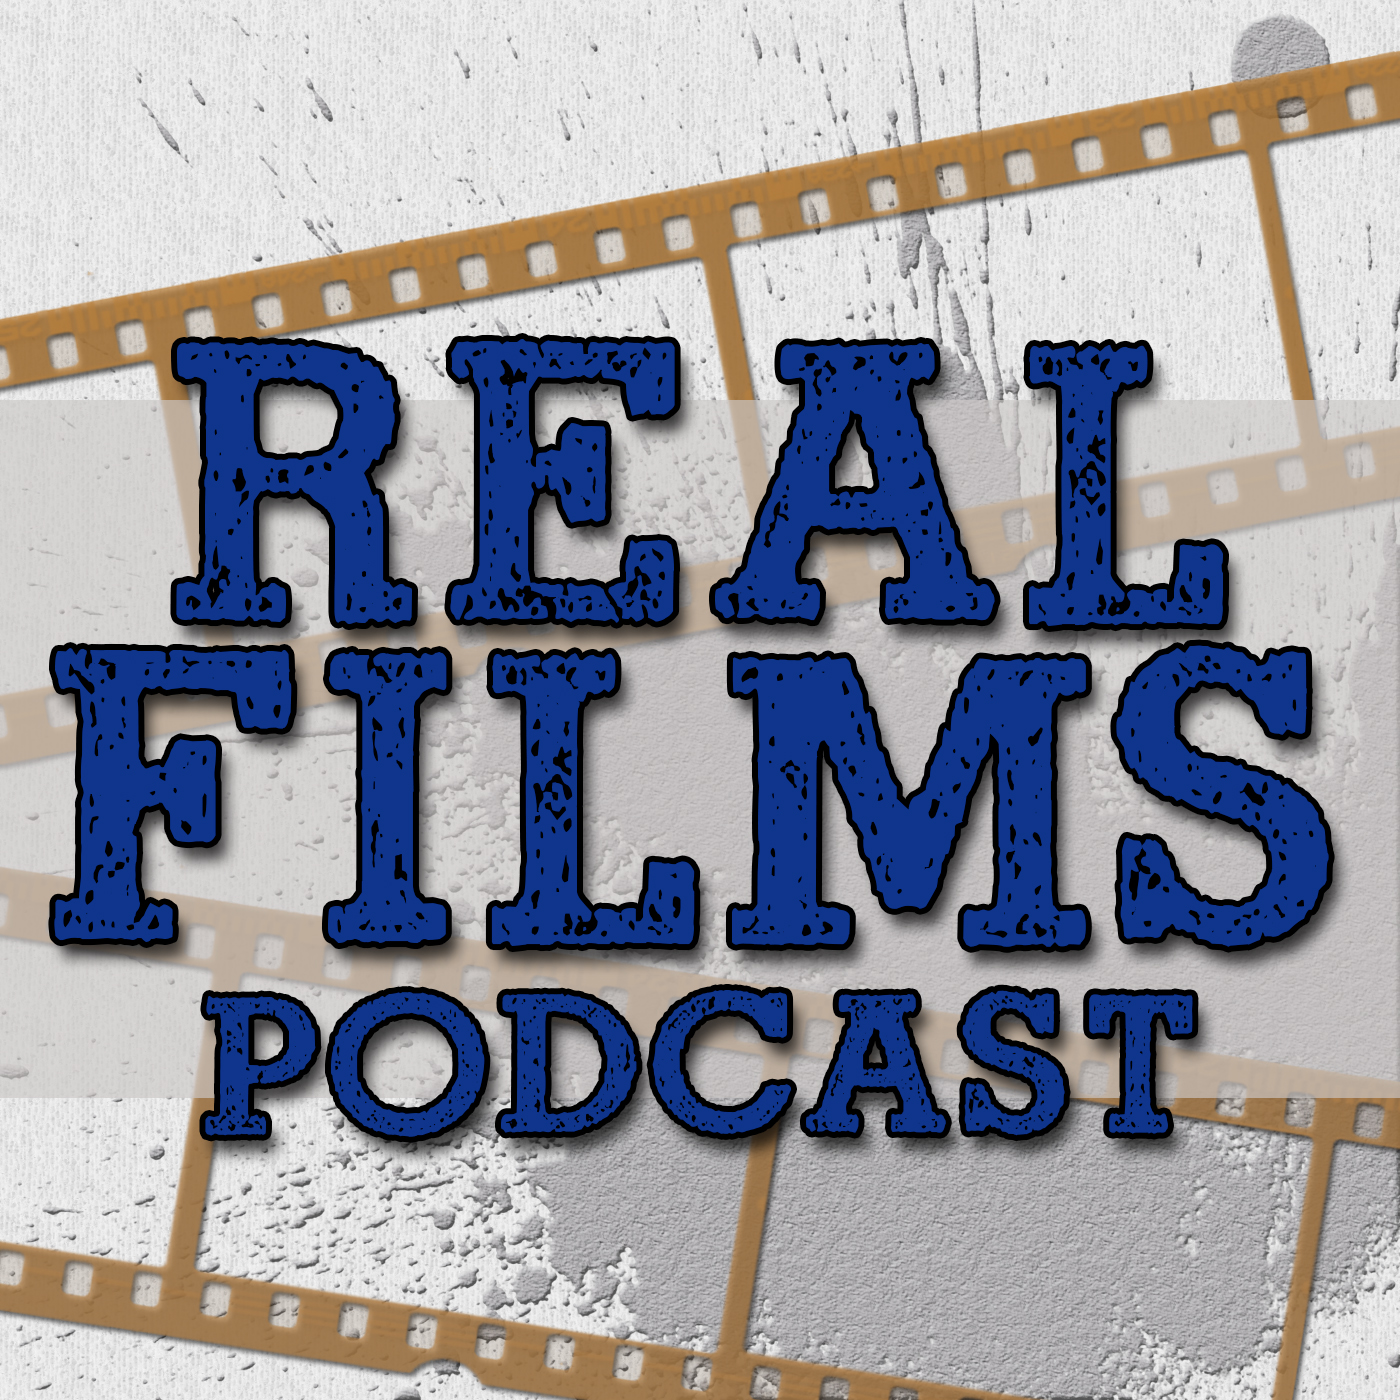 Episode 101 - RBG / Oscar Nominated Docs show art